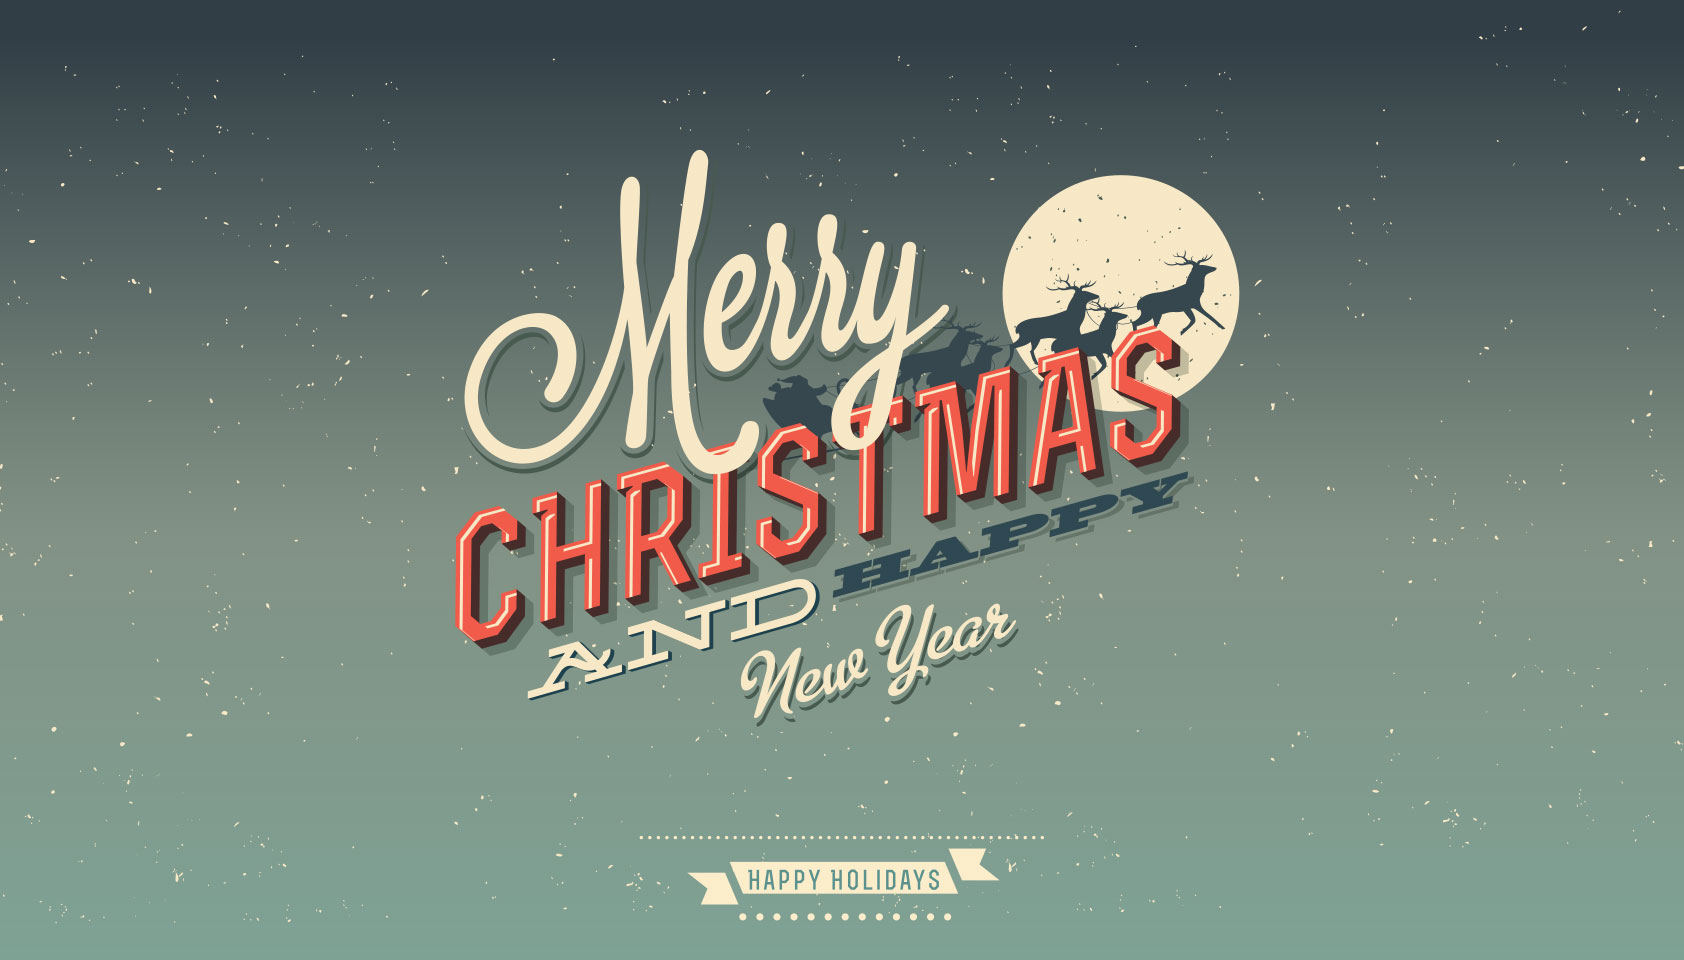 How to send clients some christmas cheer webdesigner depot kristyandbryce Choice Image